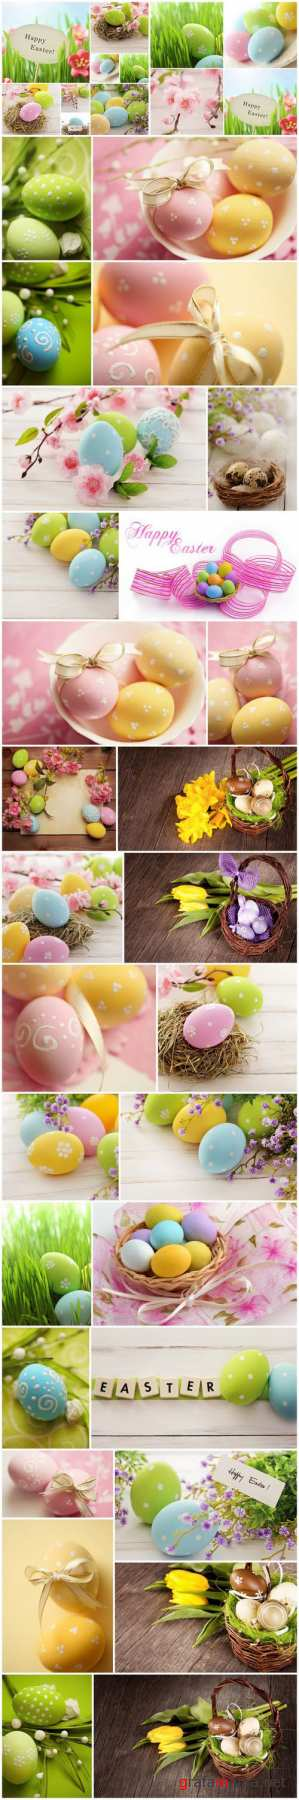 Easter Eggs and Happy Easter 3 - Set of 30xUHQ JPEG Professional Stock Images